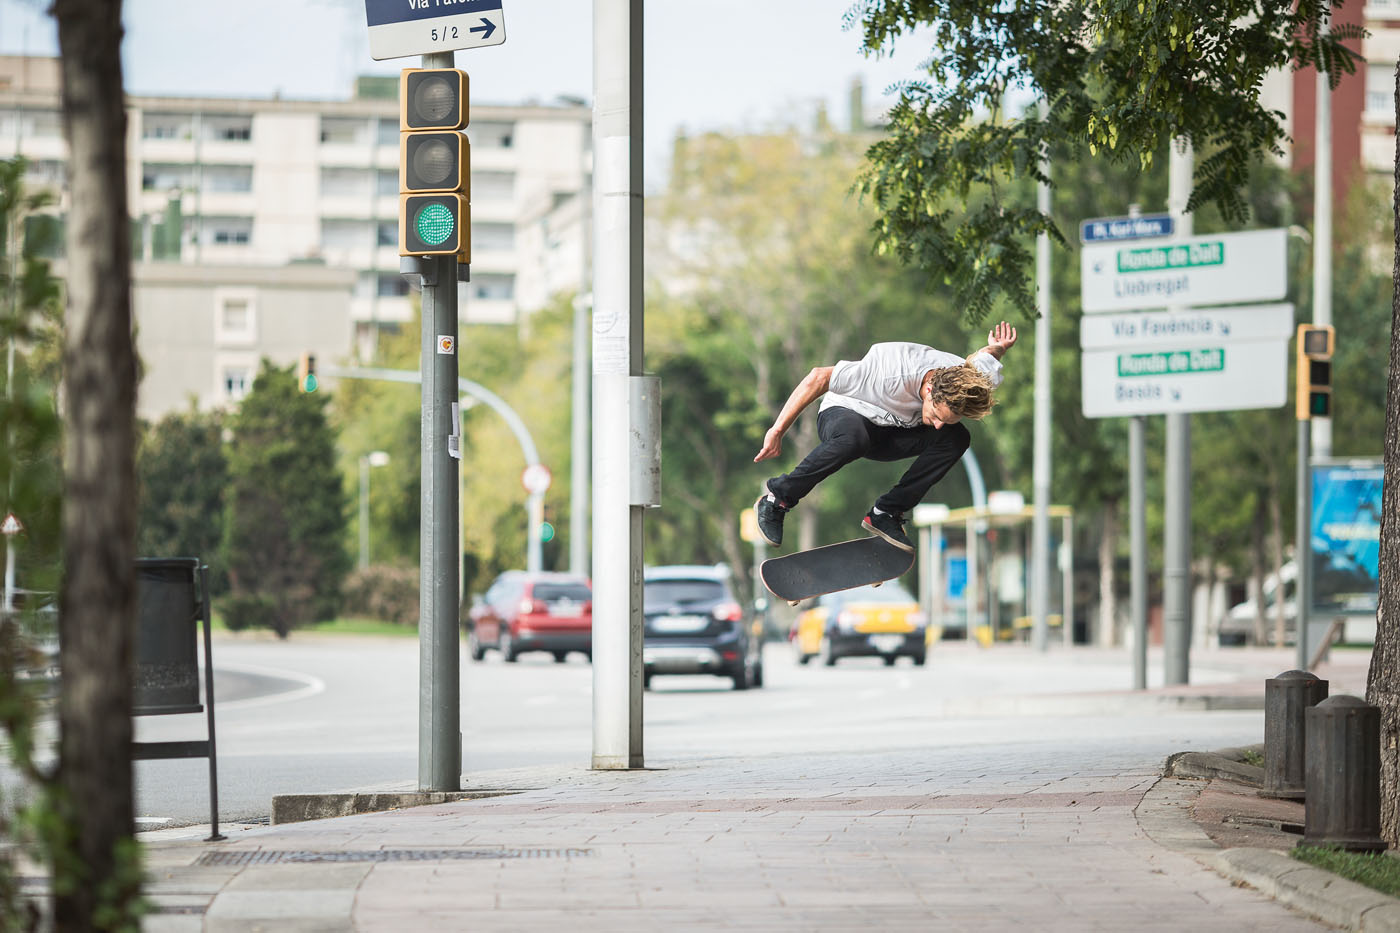 Mark_Frolich_bs_Flip_Photo_Gabriel_Engelke